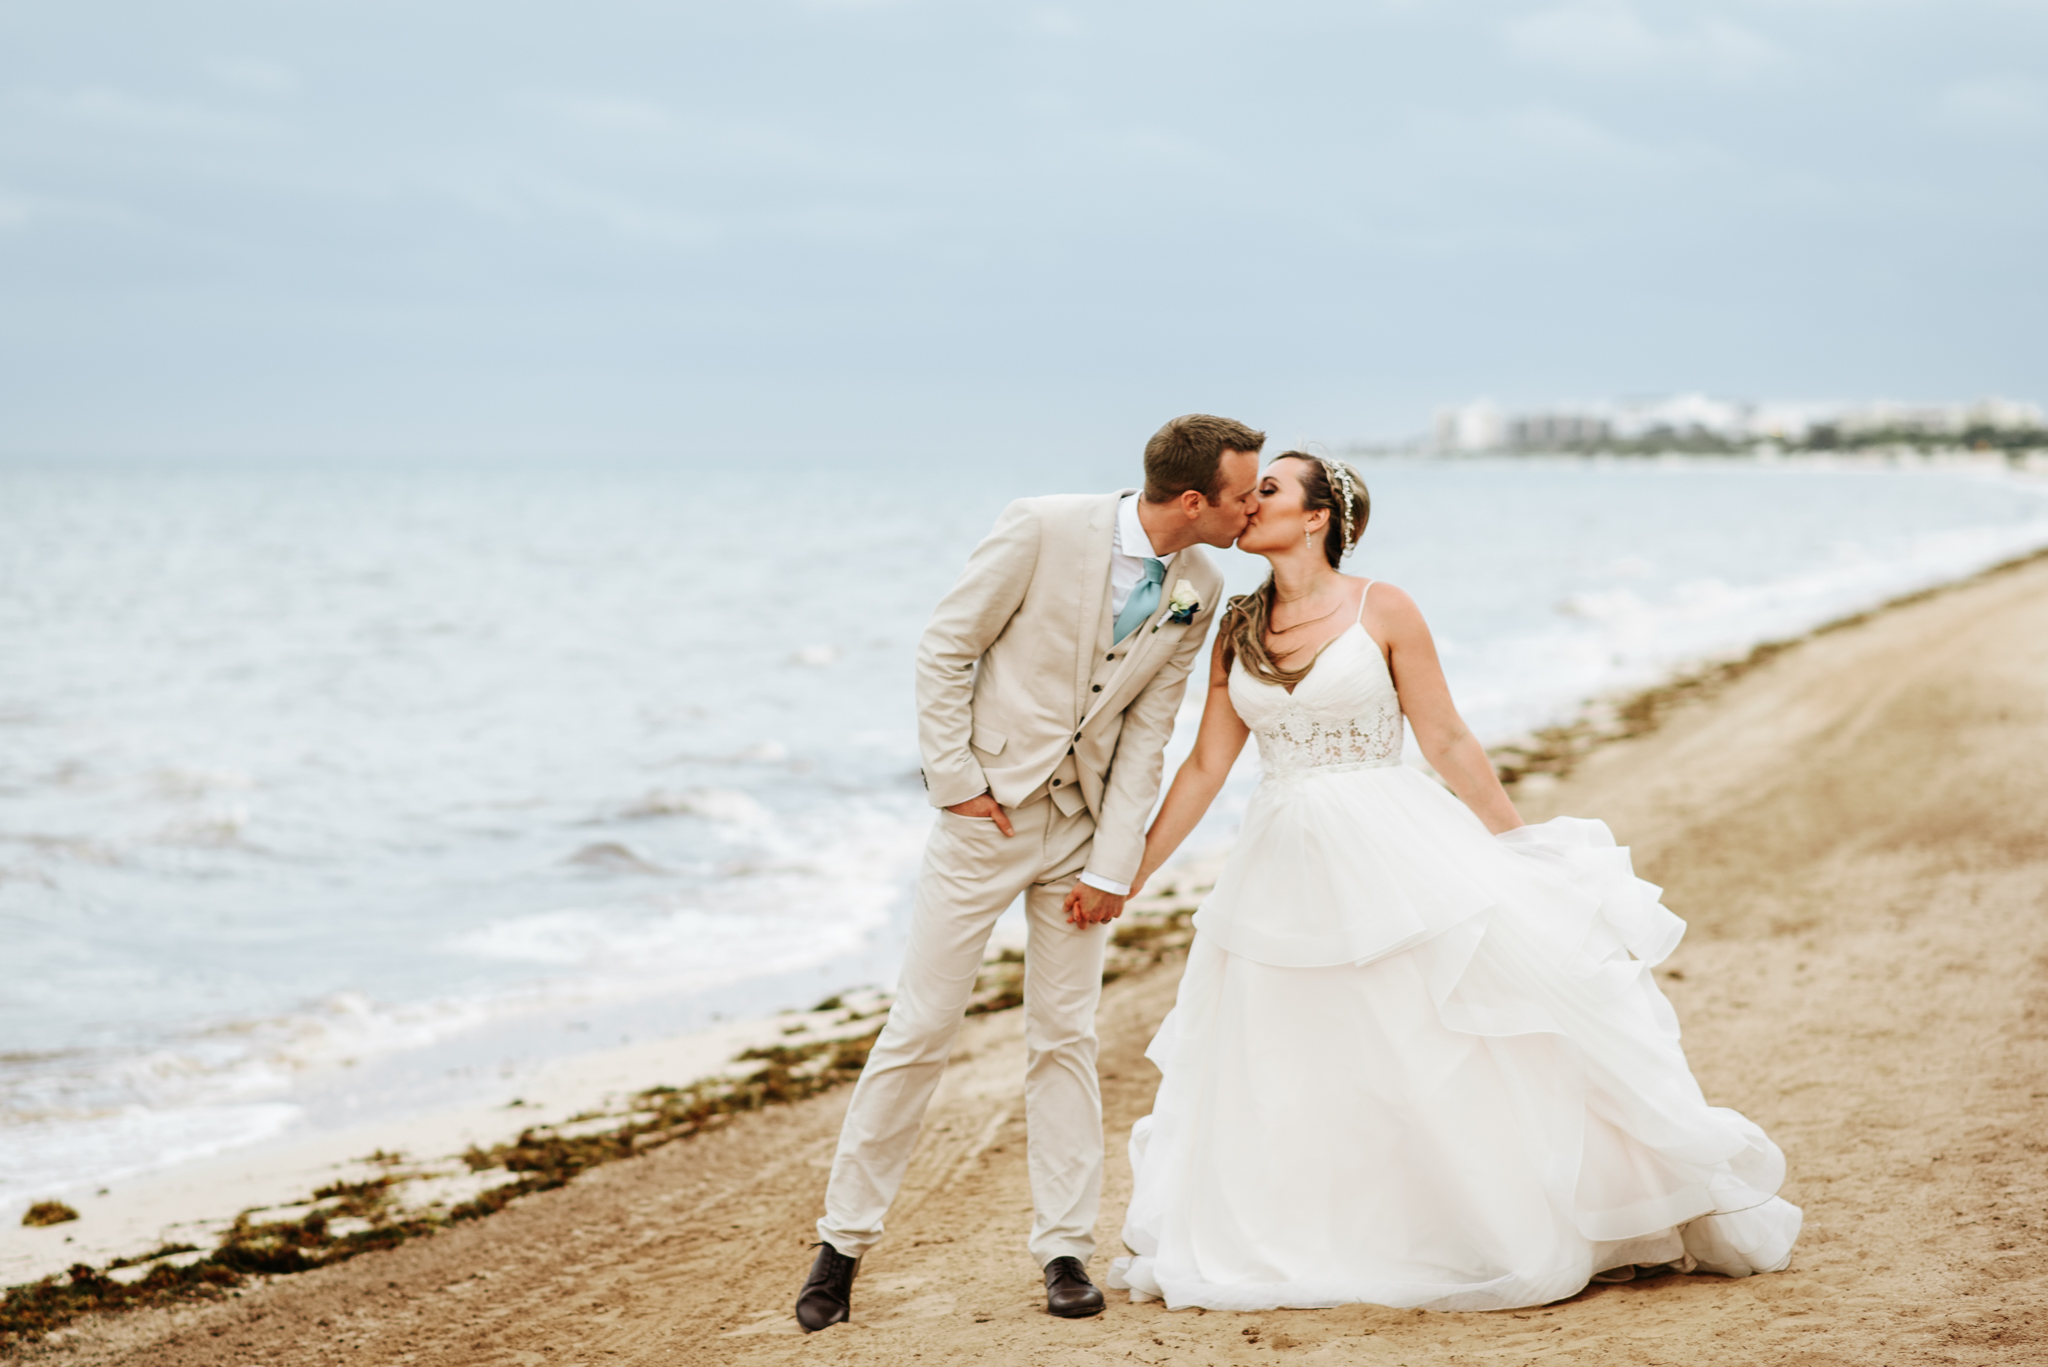 love-and-be-loved-photography-destination-wedding-photographer-cancun-mexico-jessica-jon-image-picture-photo-156.jpg